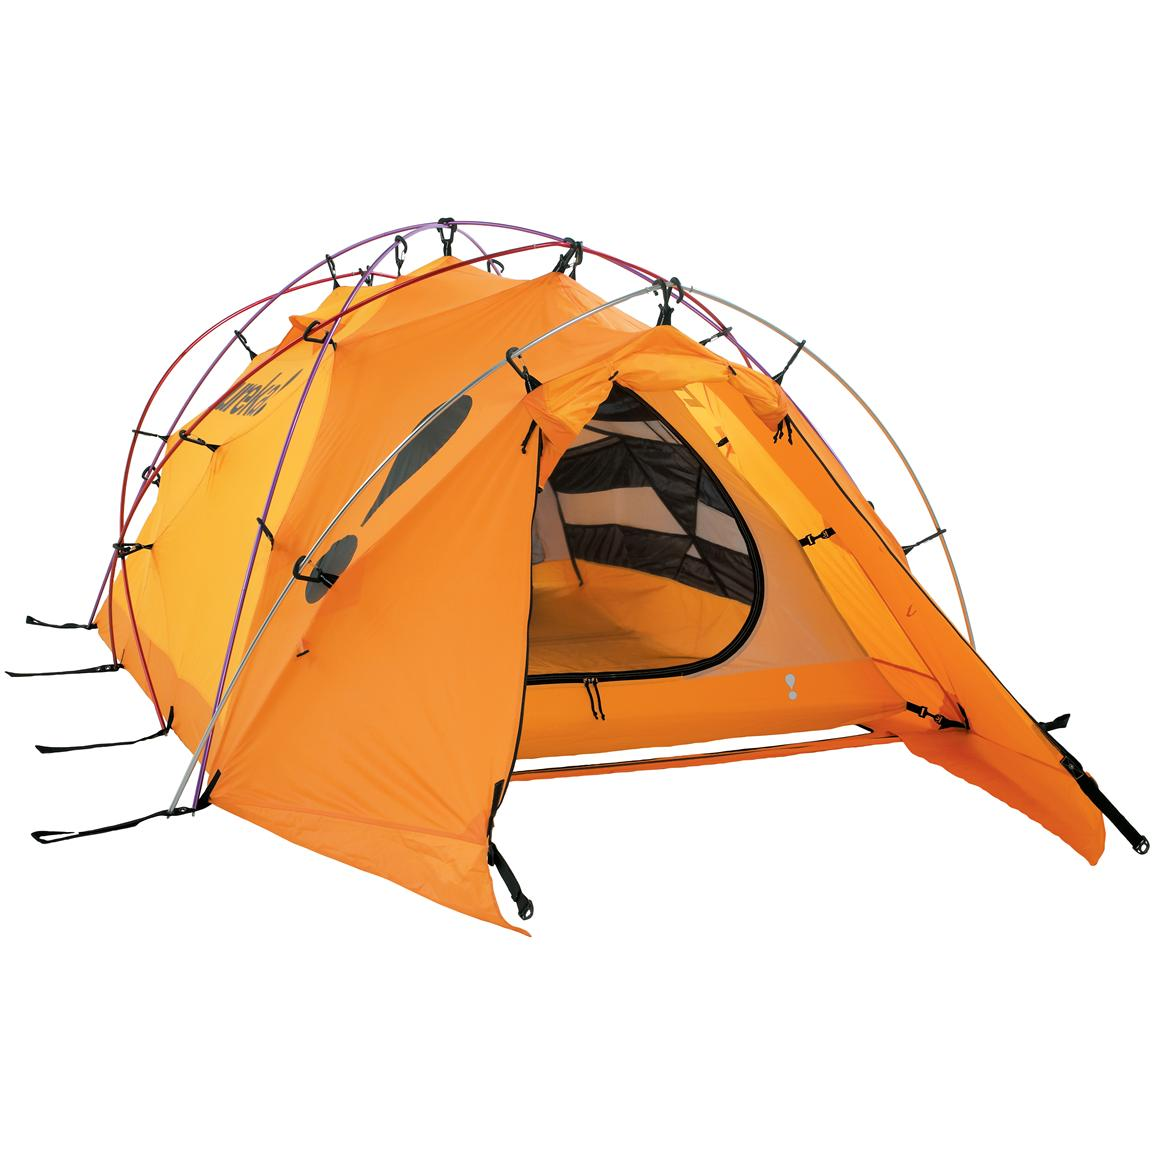 Eureka! 5th Season Exo Tent Yellow without Rainfly  sc 1 st  Sportsmanu0027s Guide & Eureka!® 5th Season Exo Tent Yellow - 93649 Backpacking Tents at ...